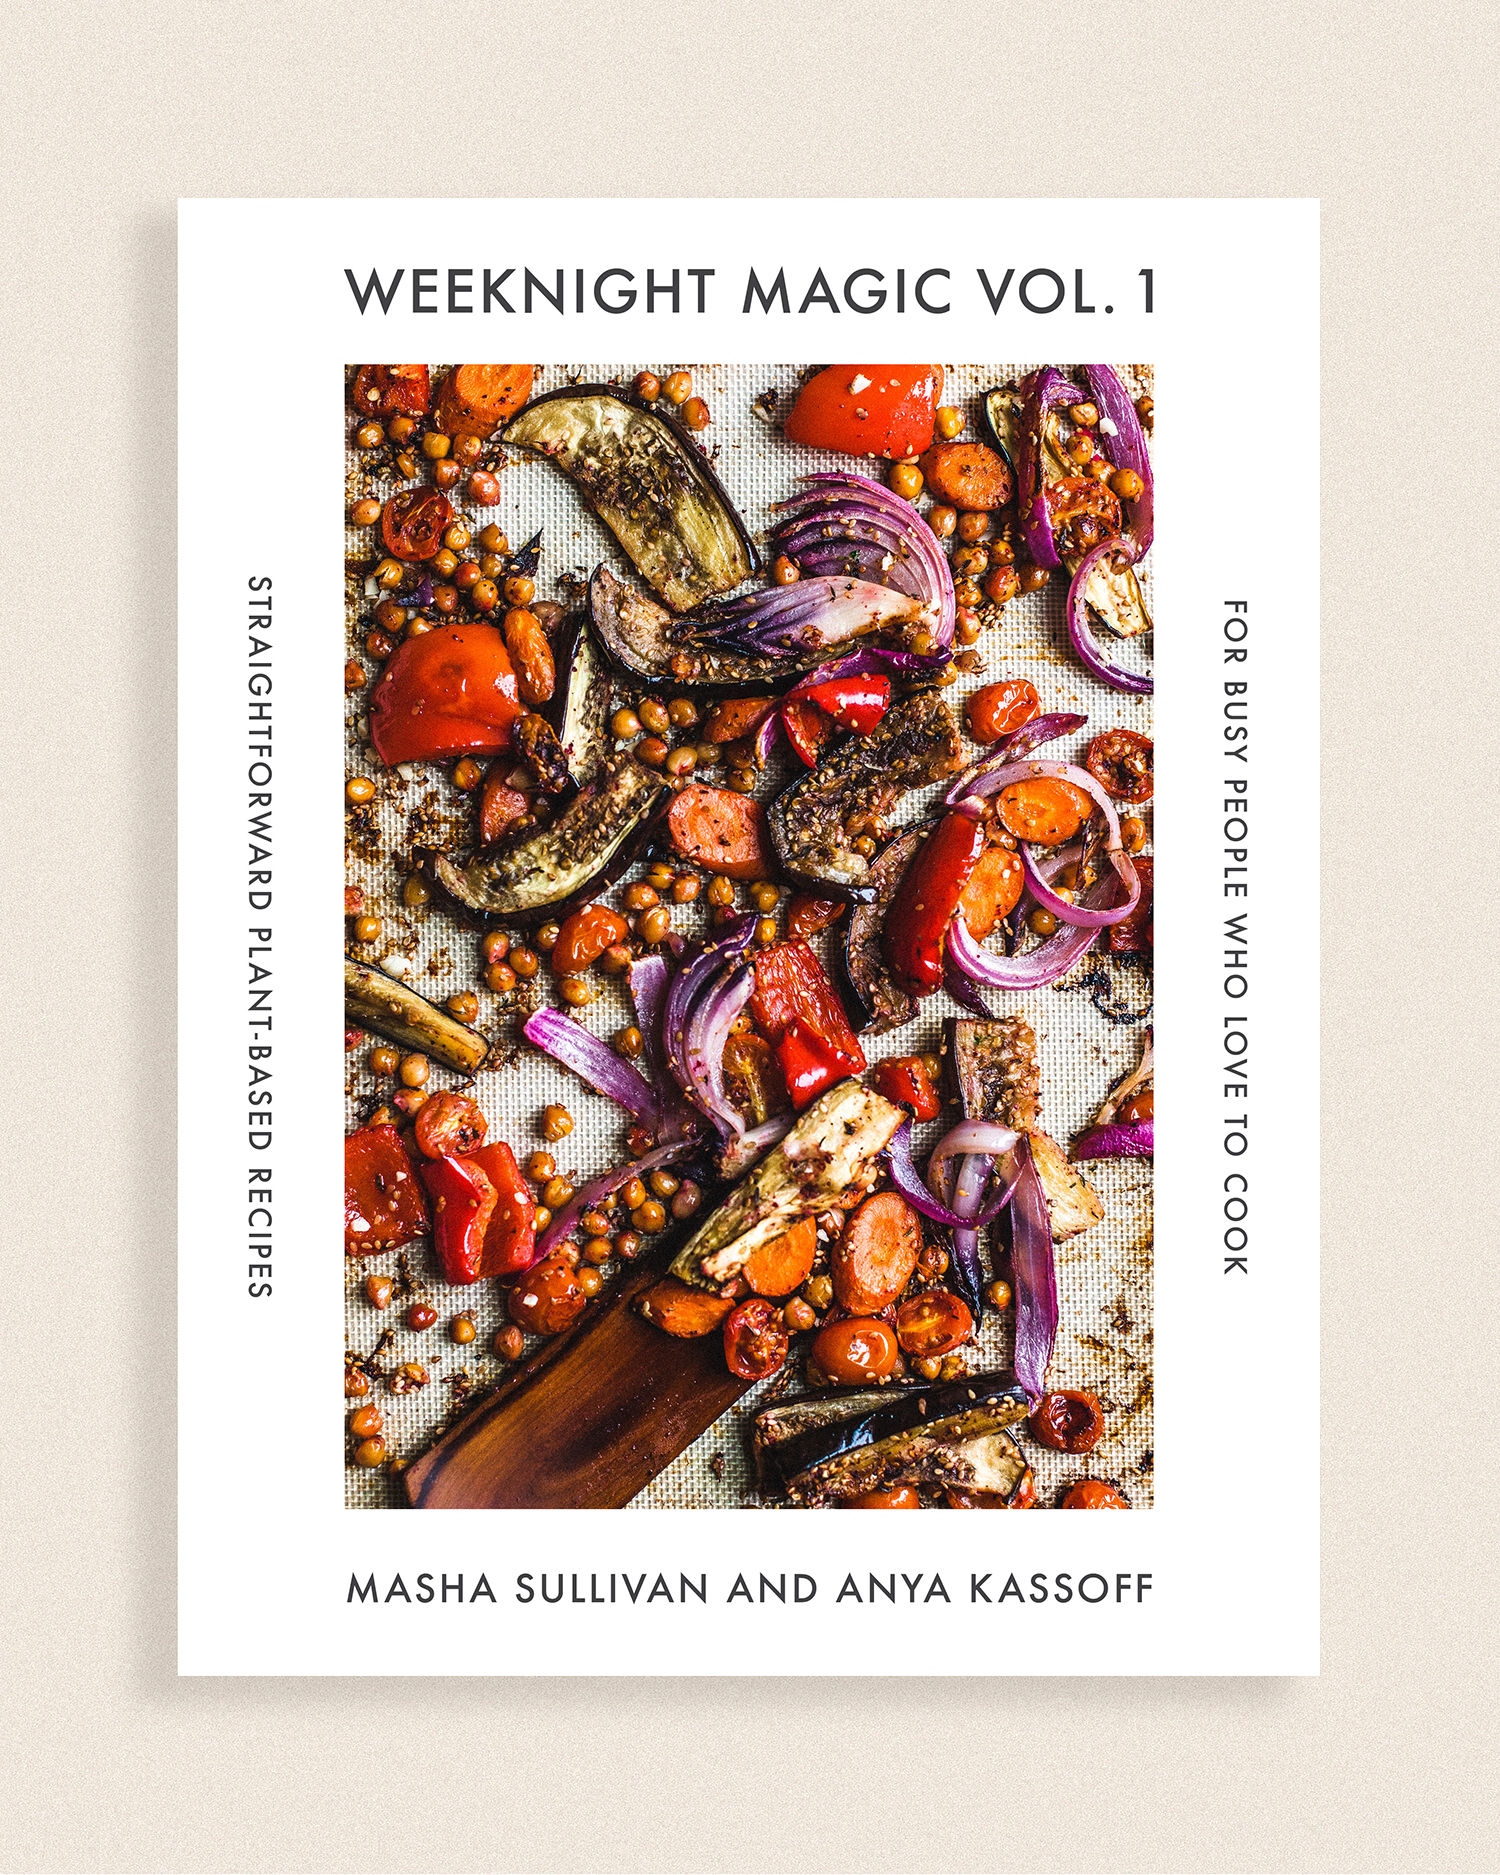 New Ebook: Weeknight Magic Vol. 1 - Golubka Kitchen